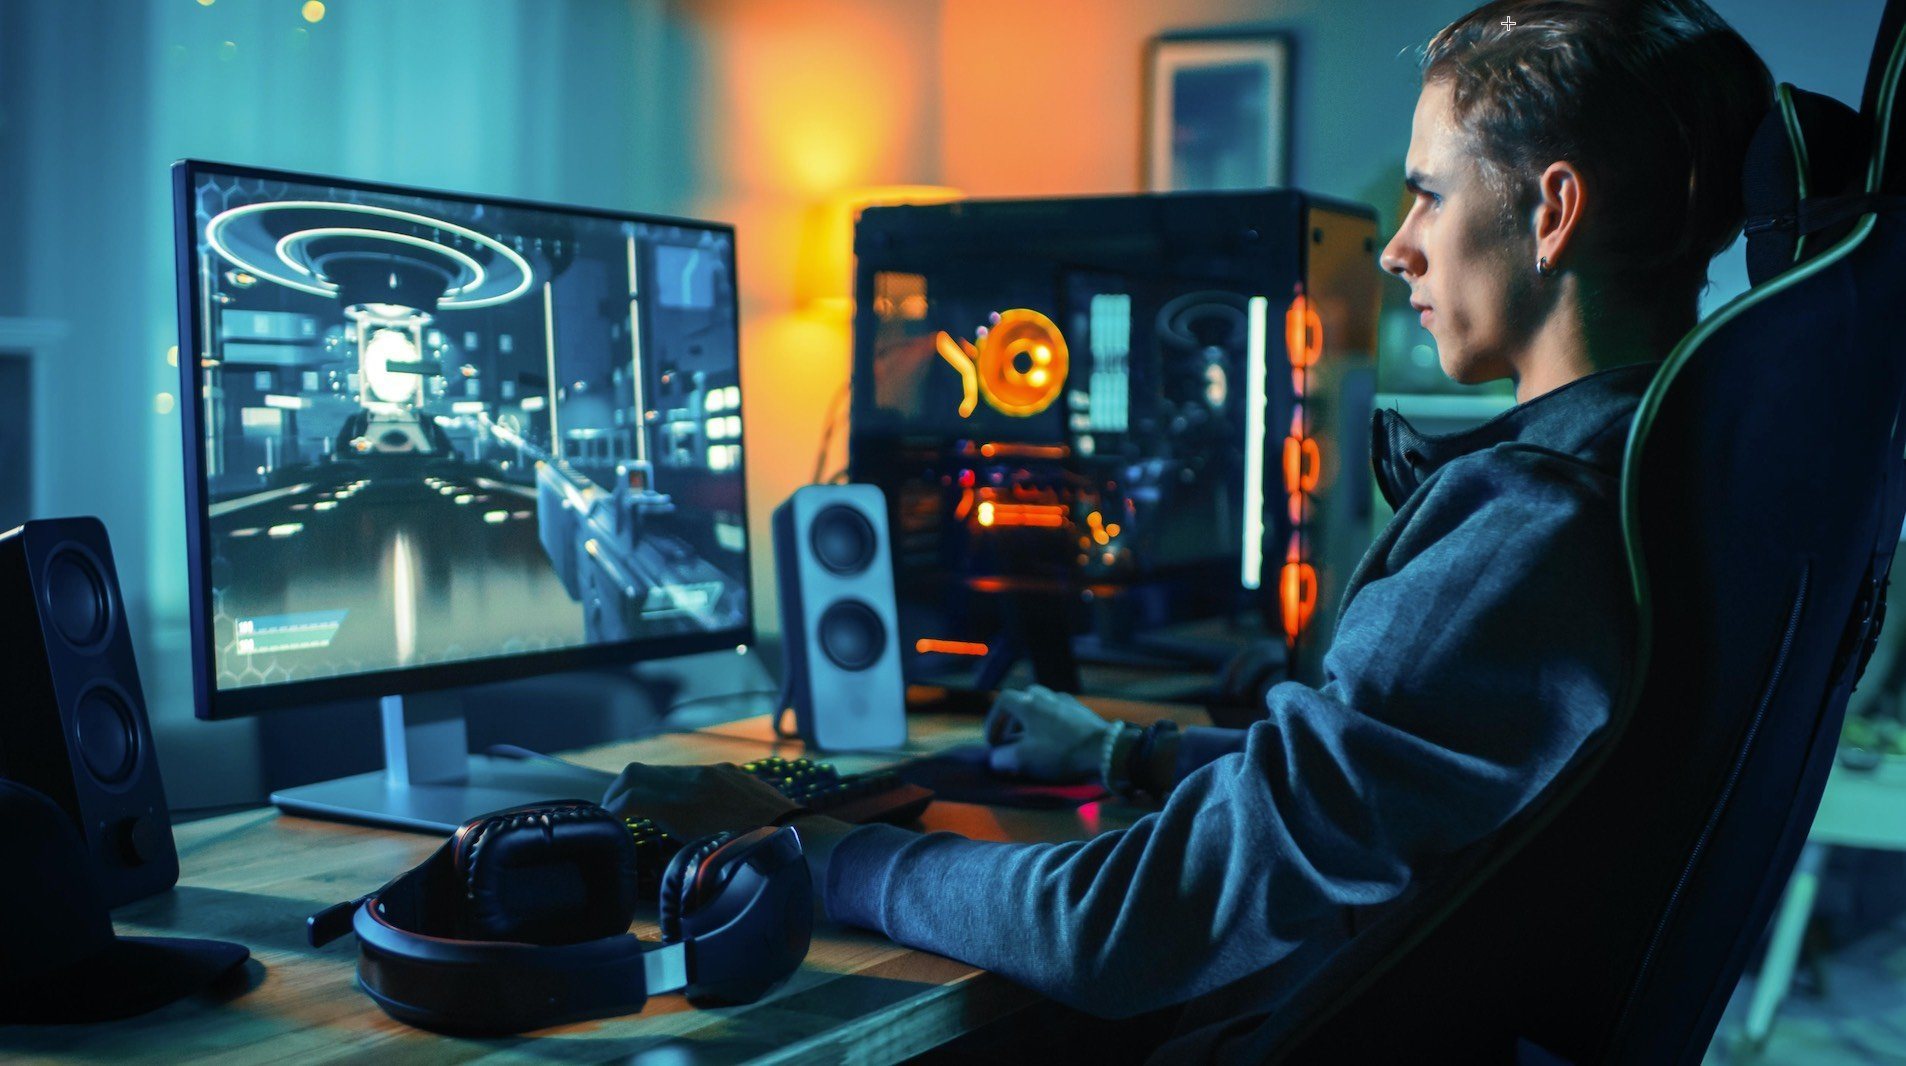 eSports Sees Explosive Growth in Social Gaming as People Stay Home